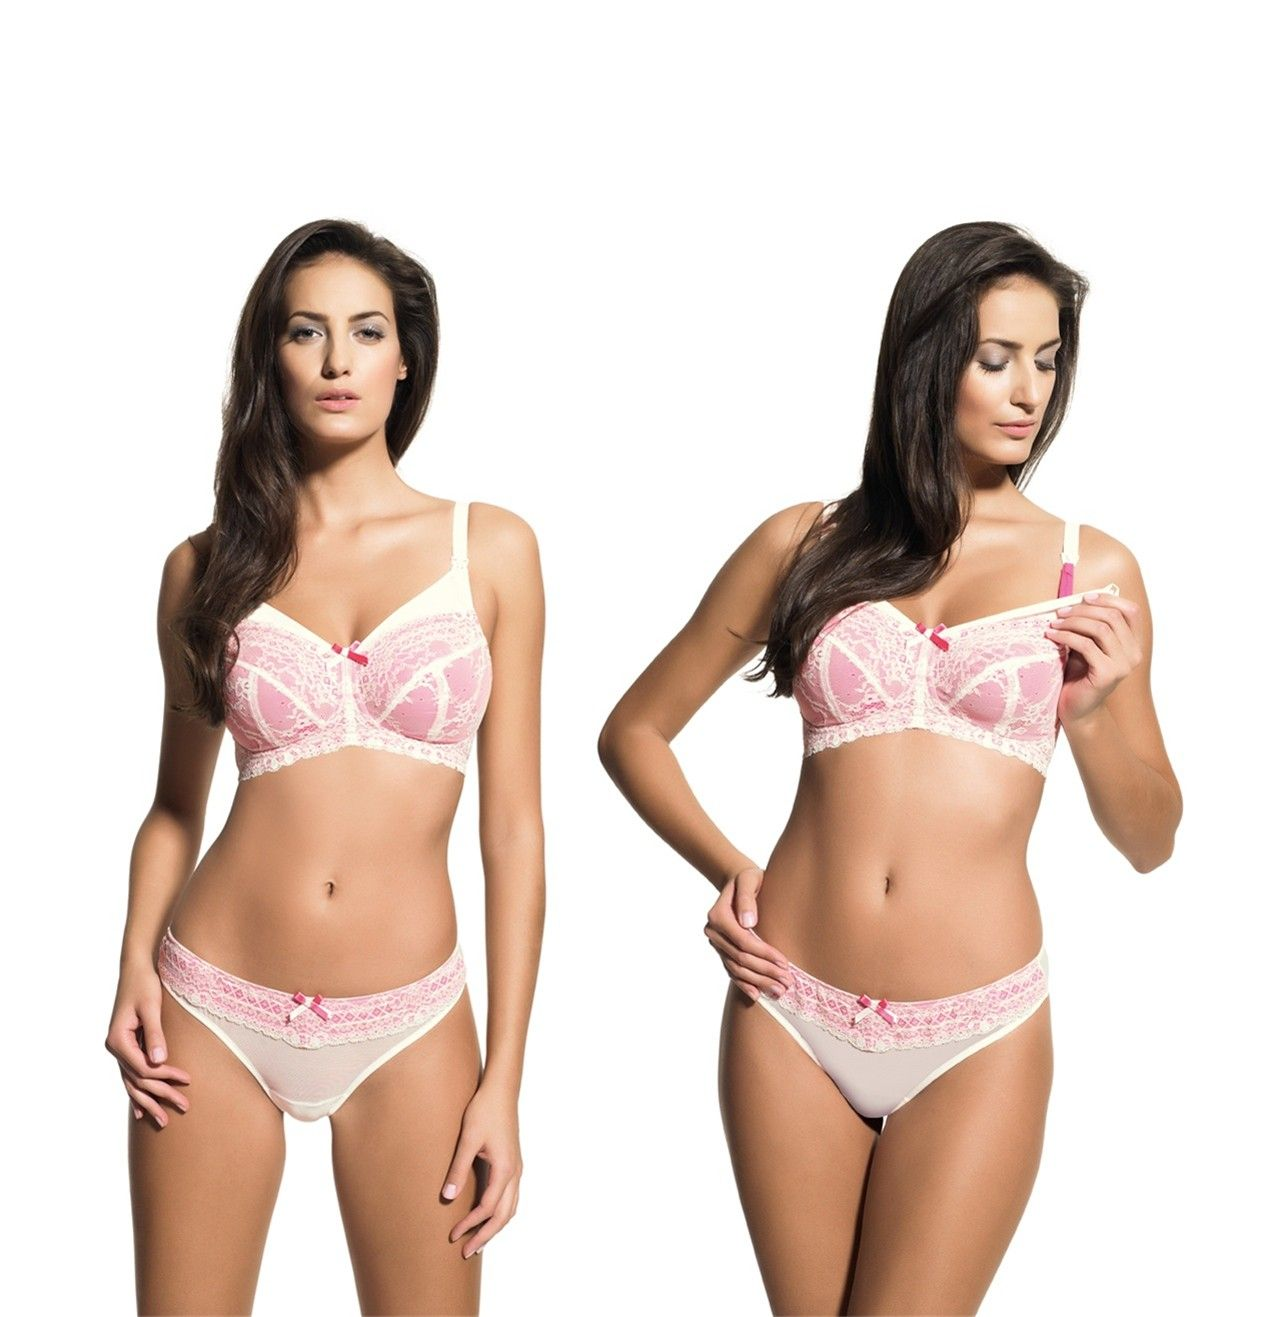 7271957223da7 We have the Panache Sophie nursing bra in 28 and 30 bands! This is a great  no-wire supportive style for new moms! The pink and ivory lace is really  cute